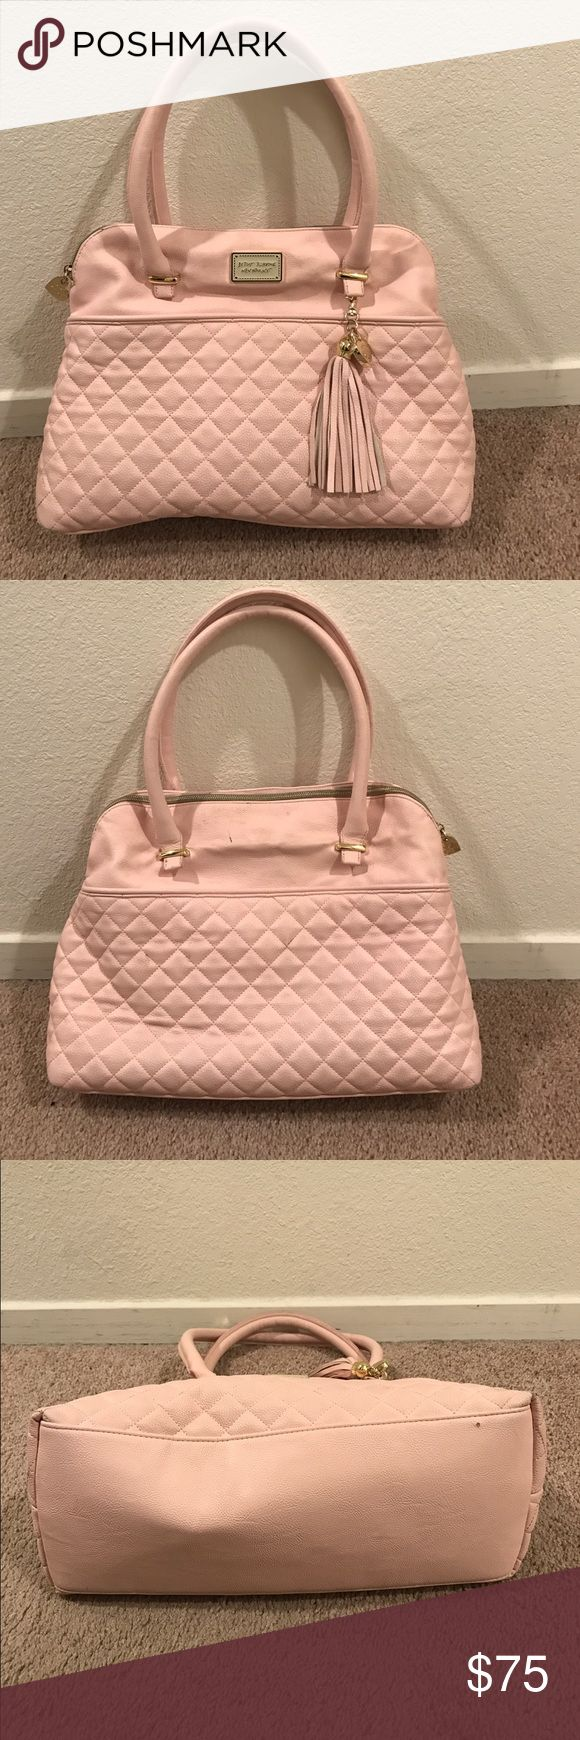 Betsy Johnson Done handbag Lightly used cute pink quilted handbag. Top zip closure. Inside has 2 slip pockets (fits iPhone 6/6s/7 and equivalent phone sizes), 1 zippered pocket. Gold tone hardware. Great bag! Betsey Johnson Bags Satchels